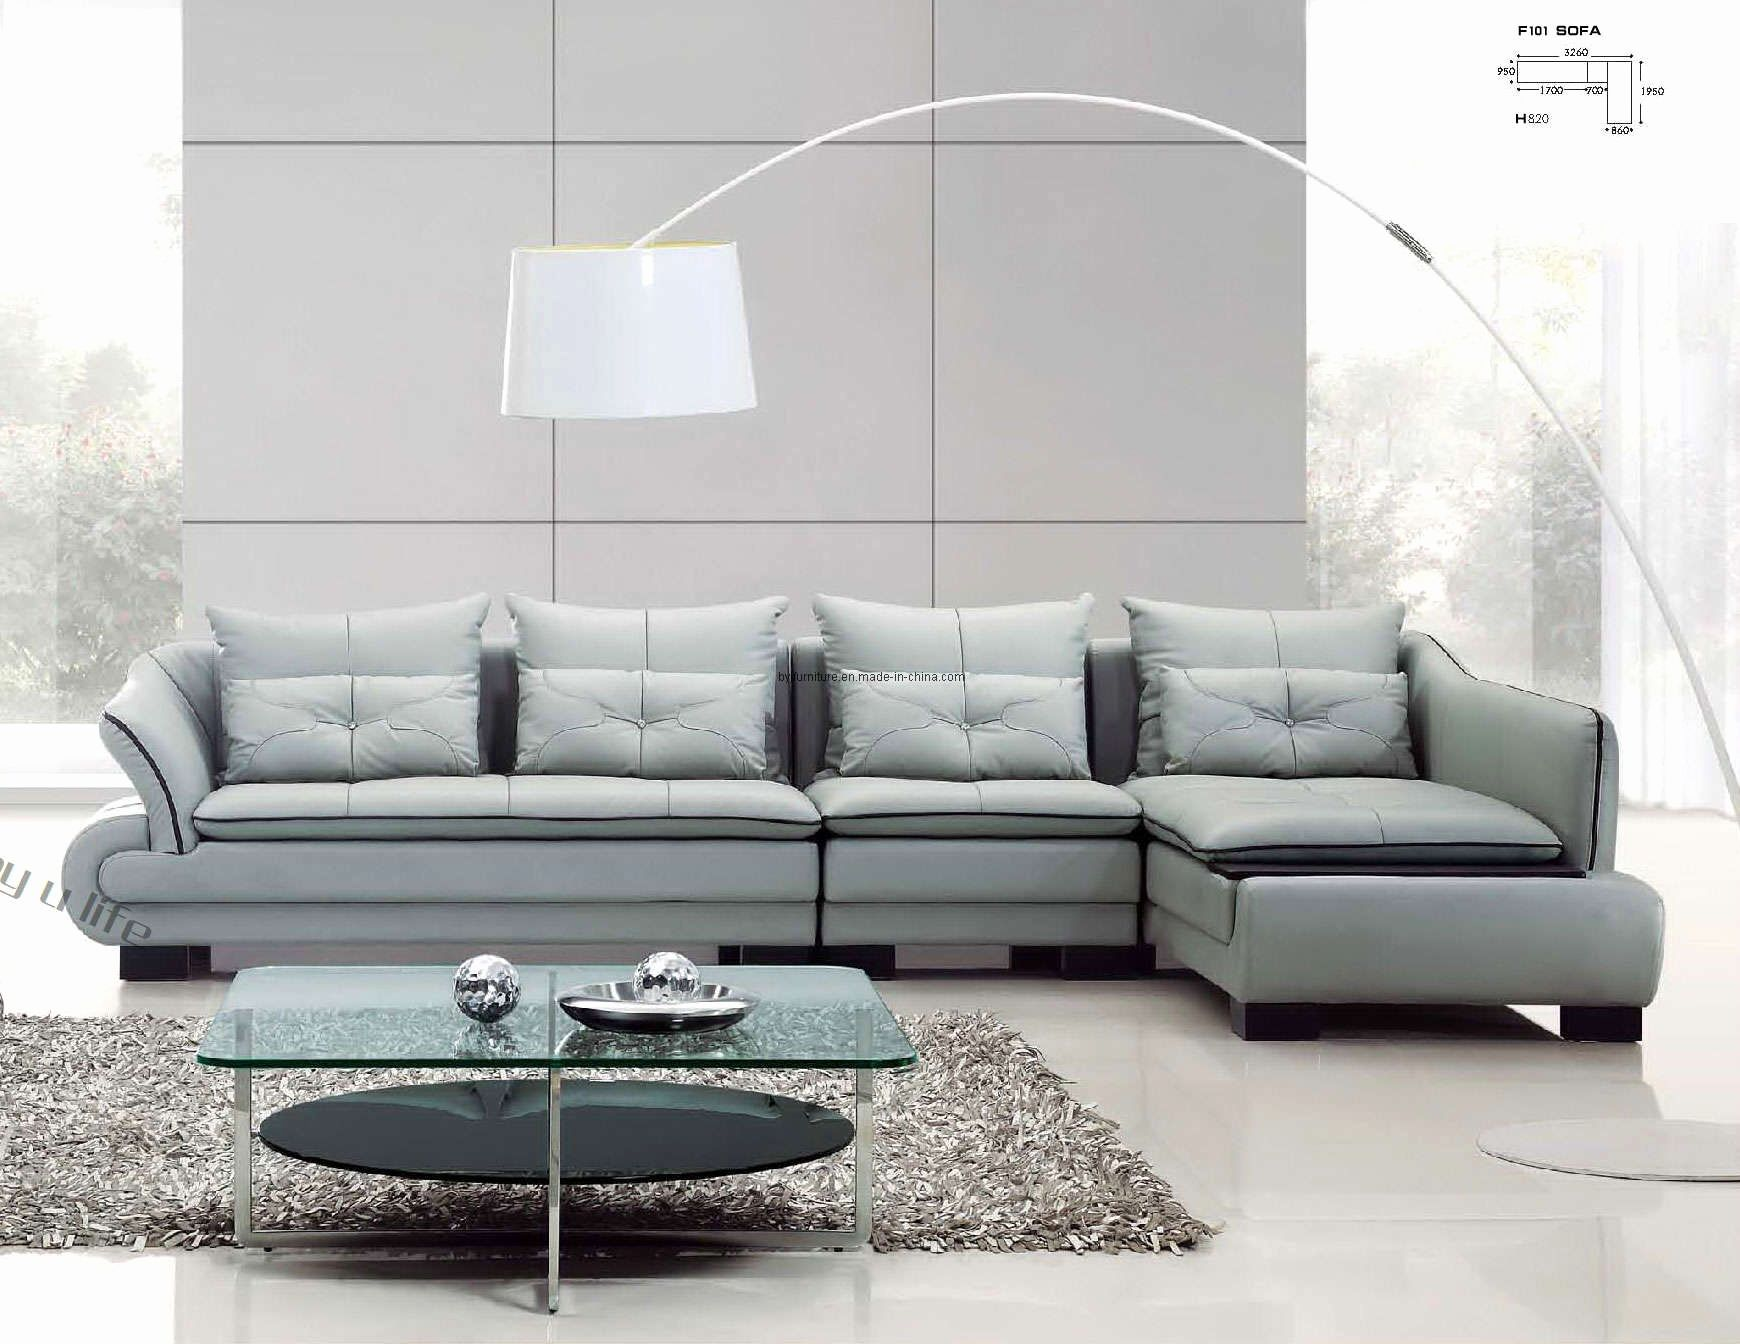 Dark Grey Couch Also Luxury Couch Schlaffunktion Neu 50 Luxury Sofa Designs For Living Room Image Sofa Designs For Living